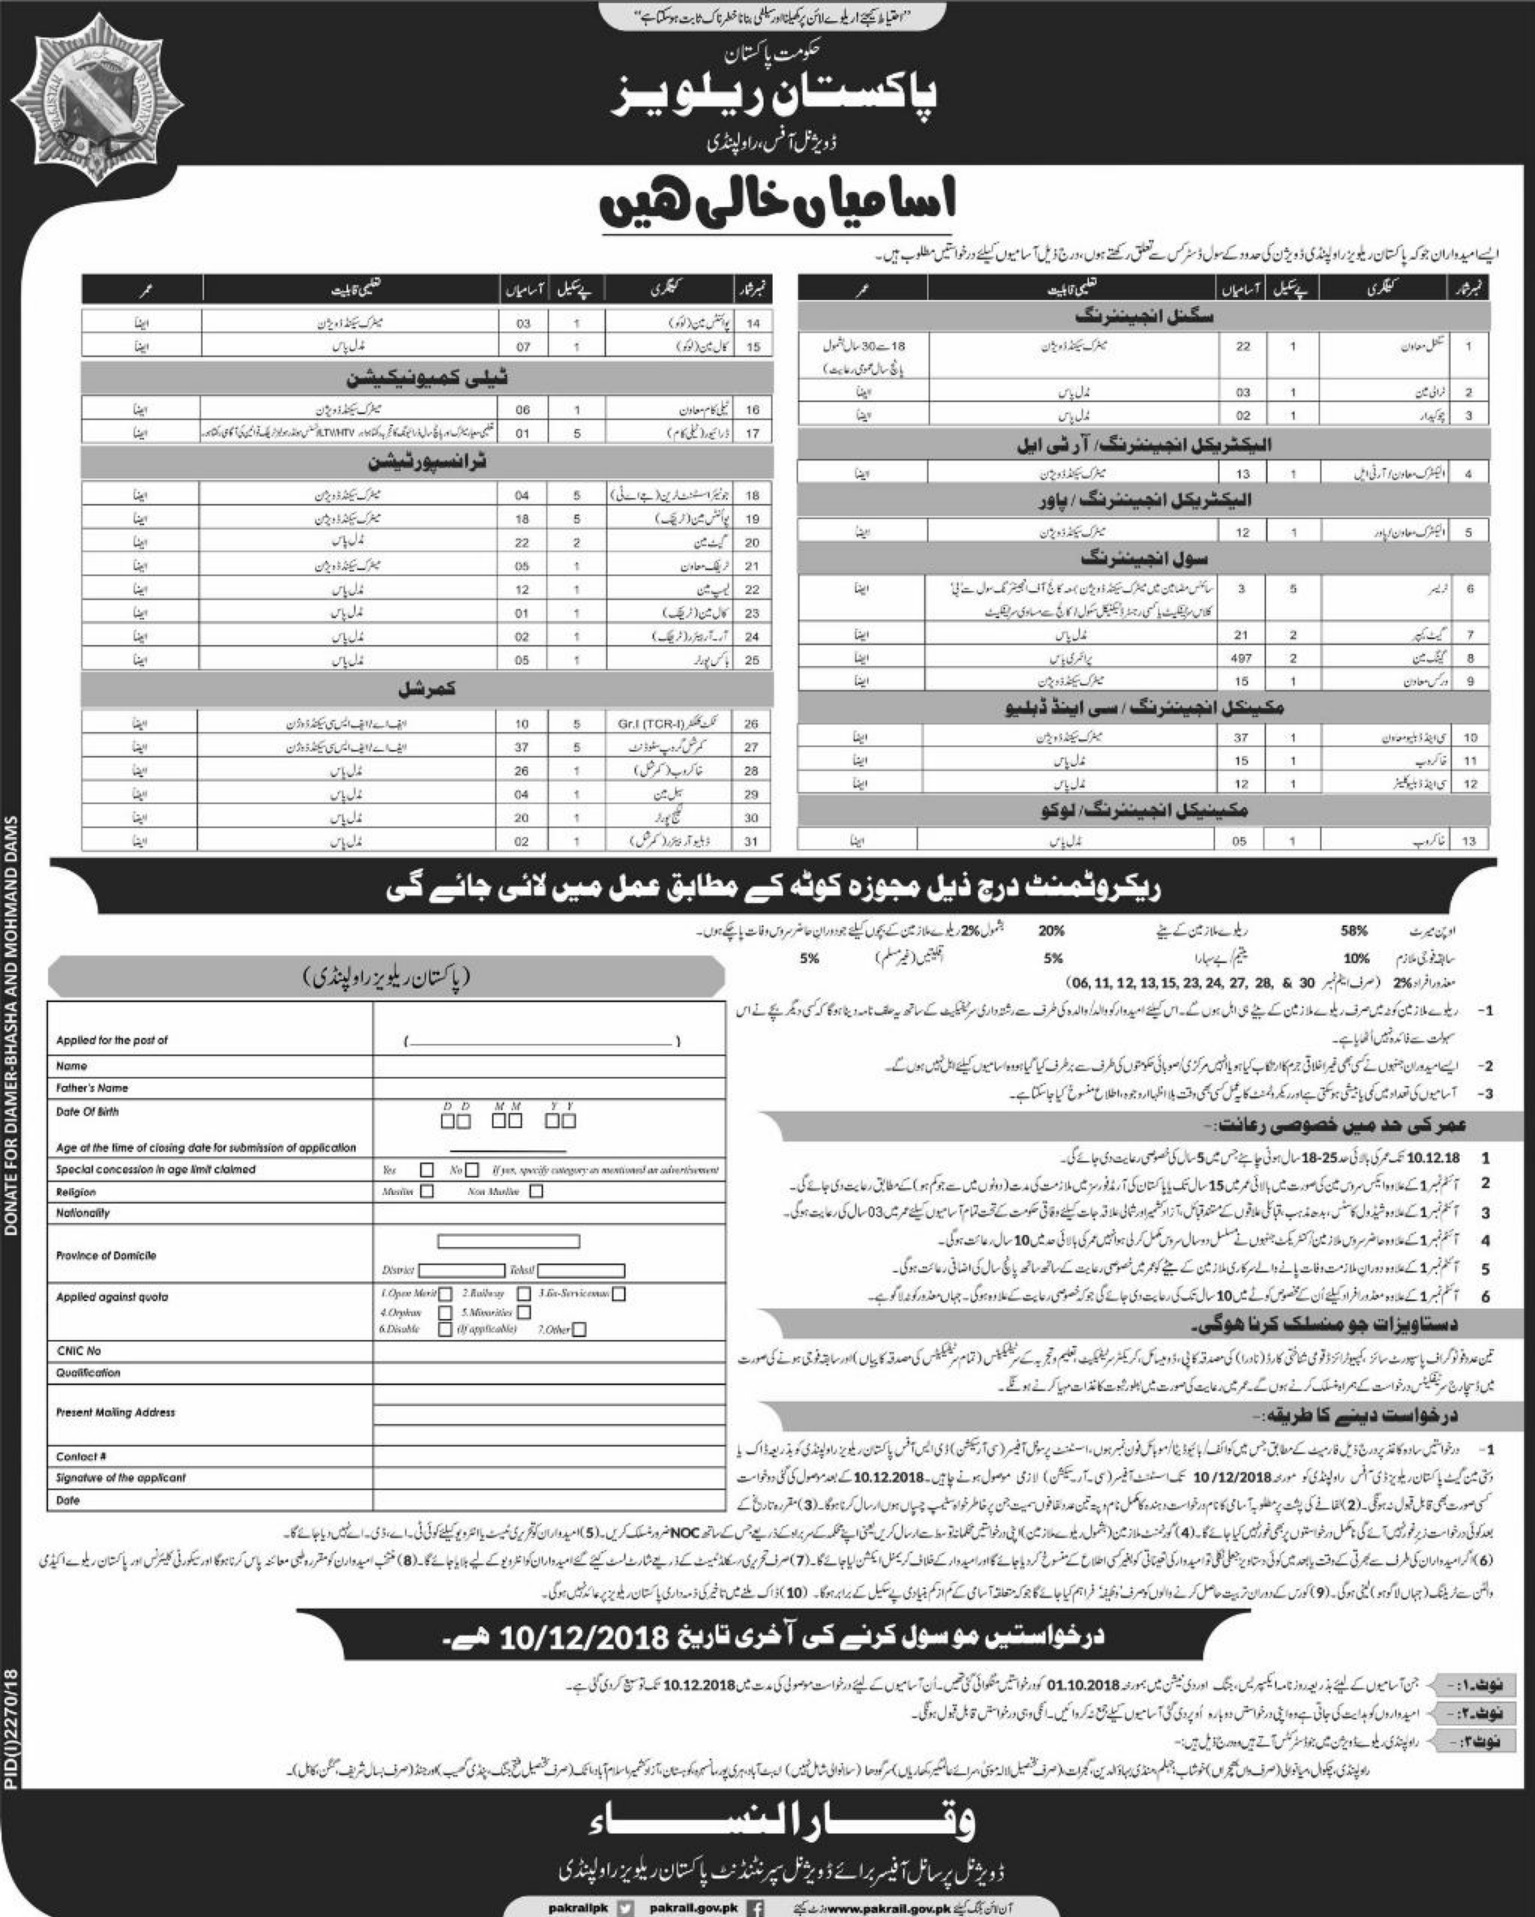 Pakistan Railways Rawalpindi Jobs Latest 2018